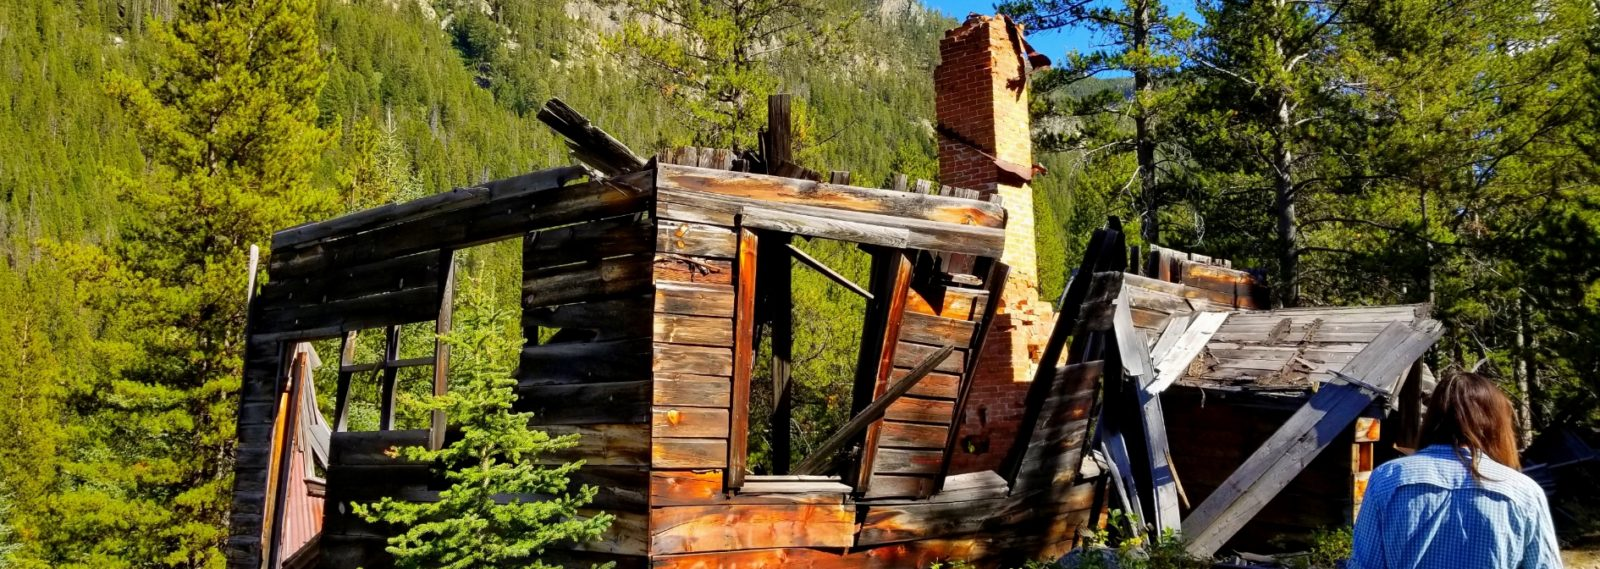 Coolidge Southwestern Montana ghost town is remotely located in a national forest.